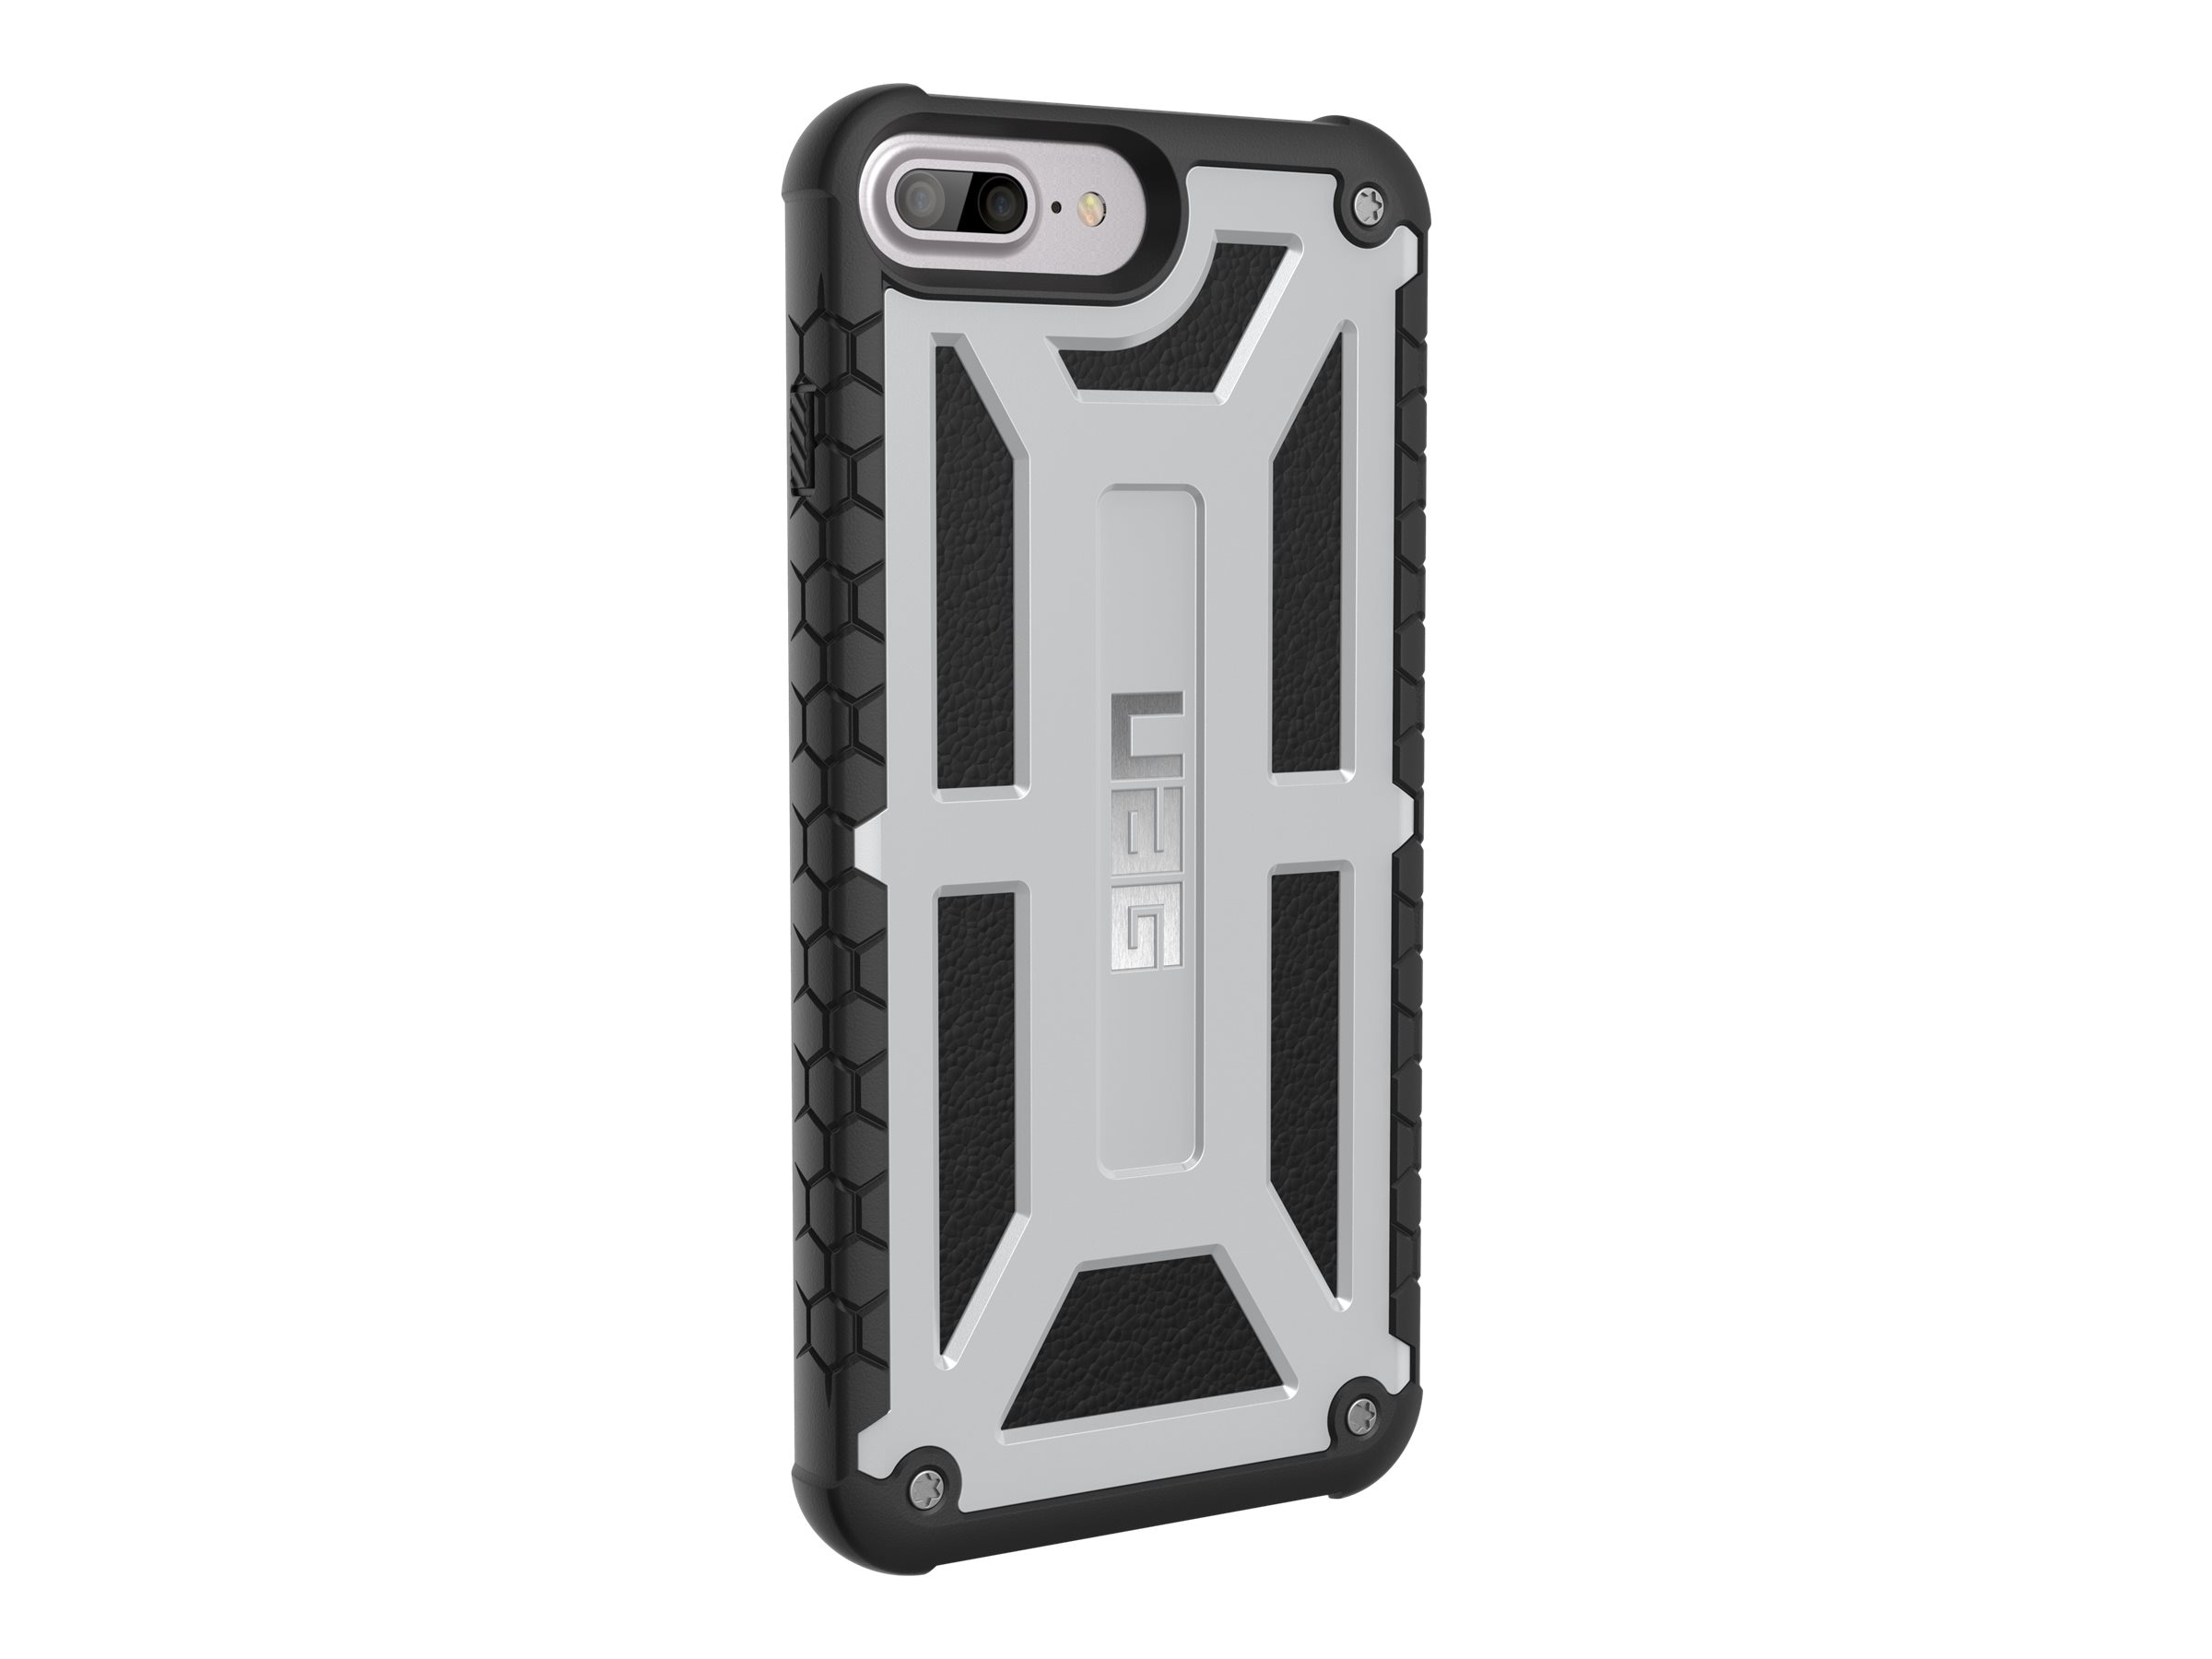 Urban Armor Monarch Platinum for iPhone 7 6s Plus, IPH7/6SPLS-M-PL